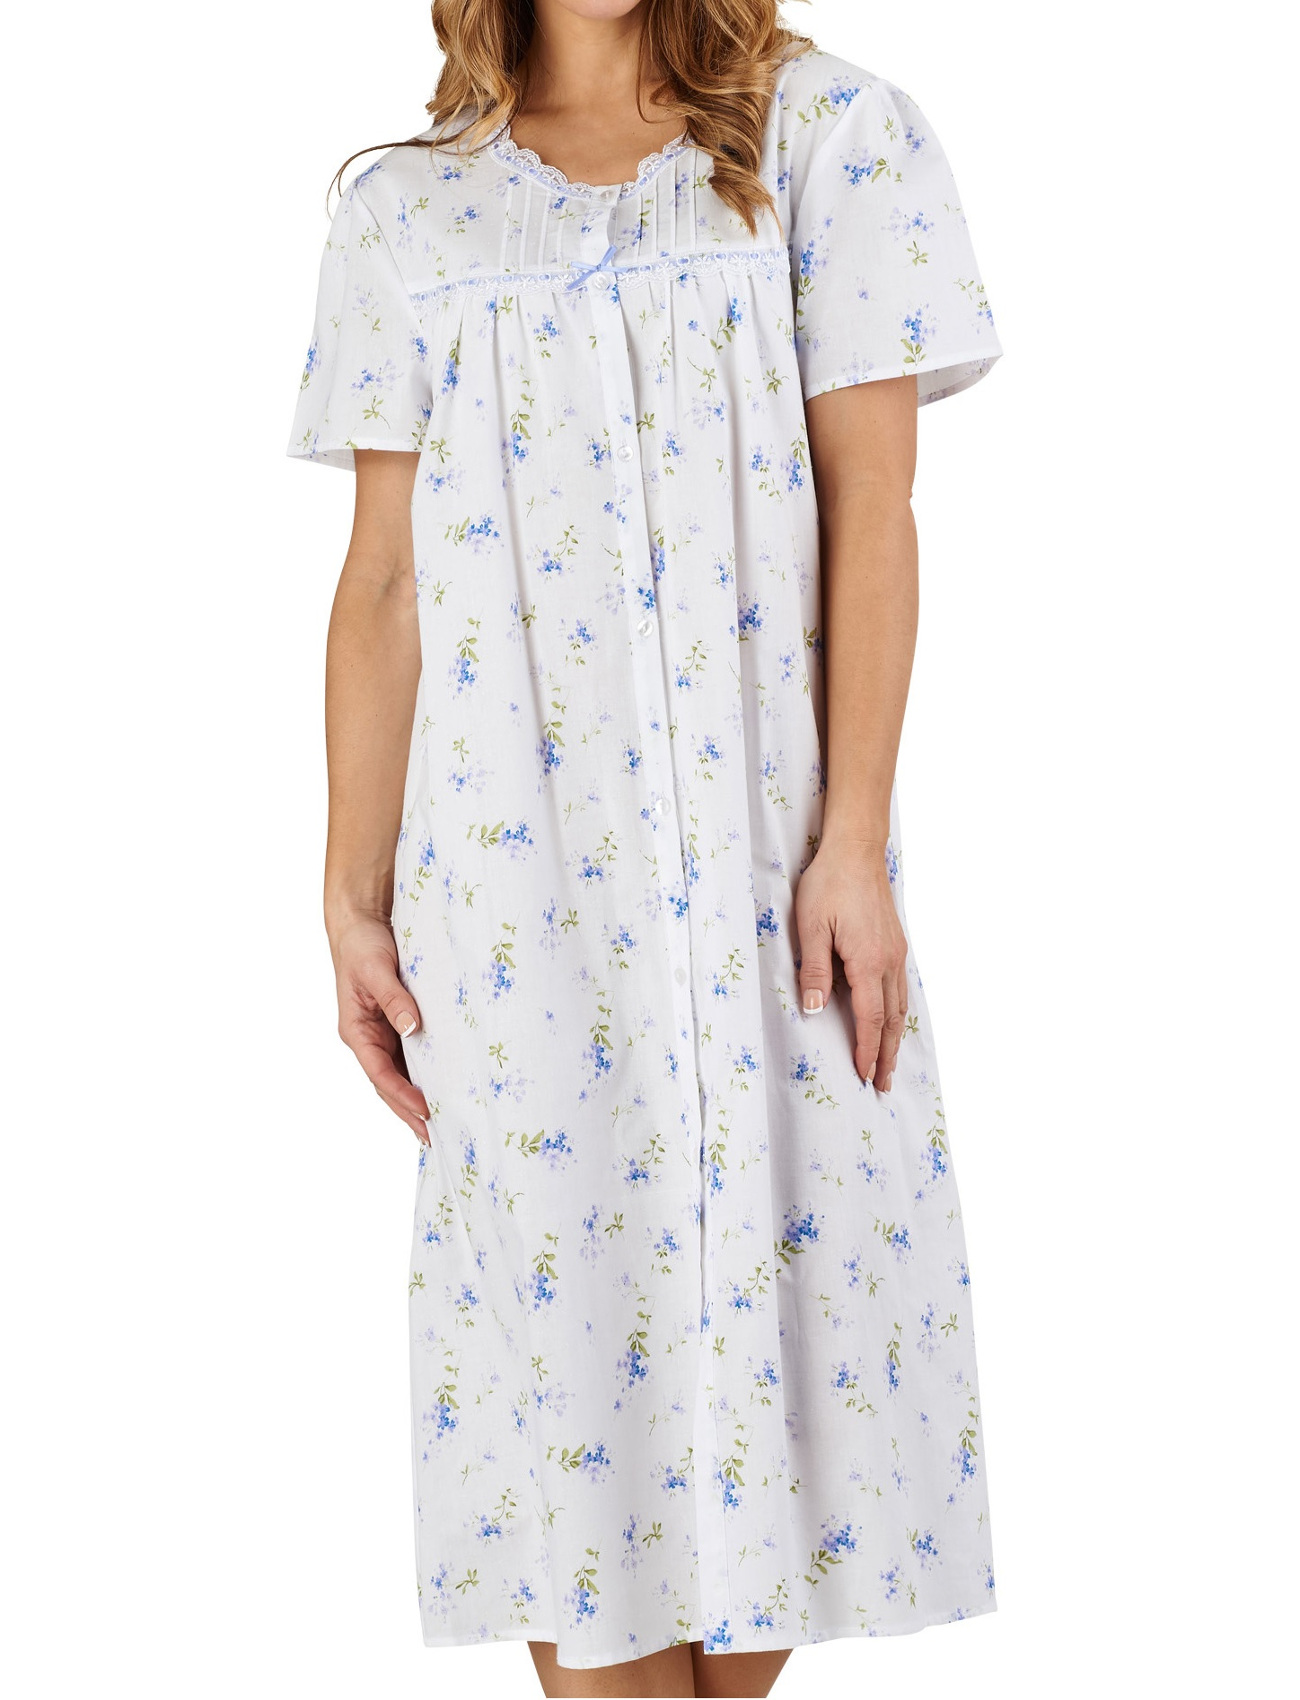 f6e92919523a These ladies button through nightdresses by Slenderella have a floral  pattern throughout with short sleeves and lace trim and would be perfect  for keeping ...